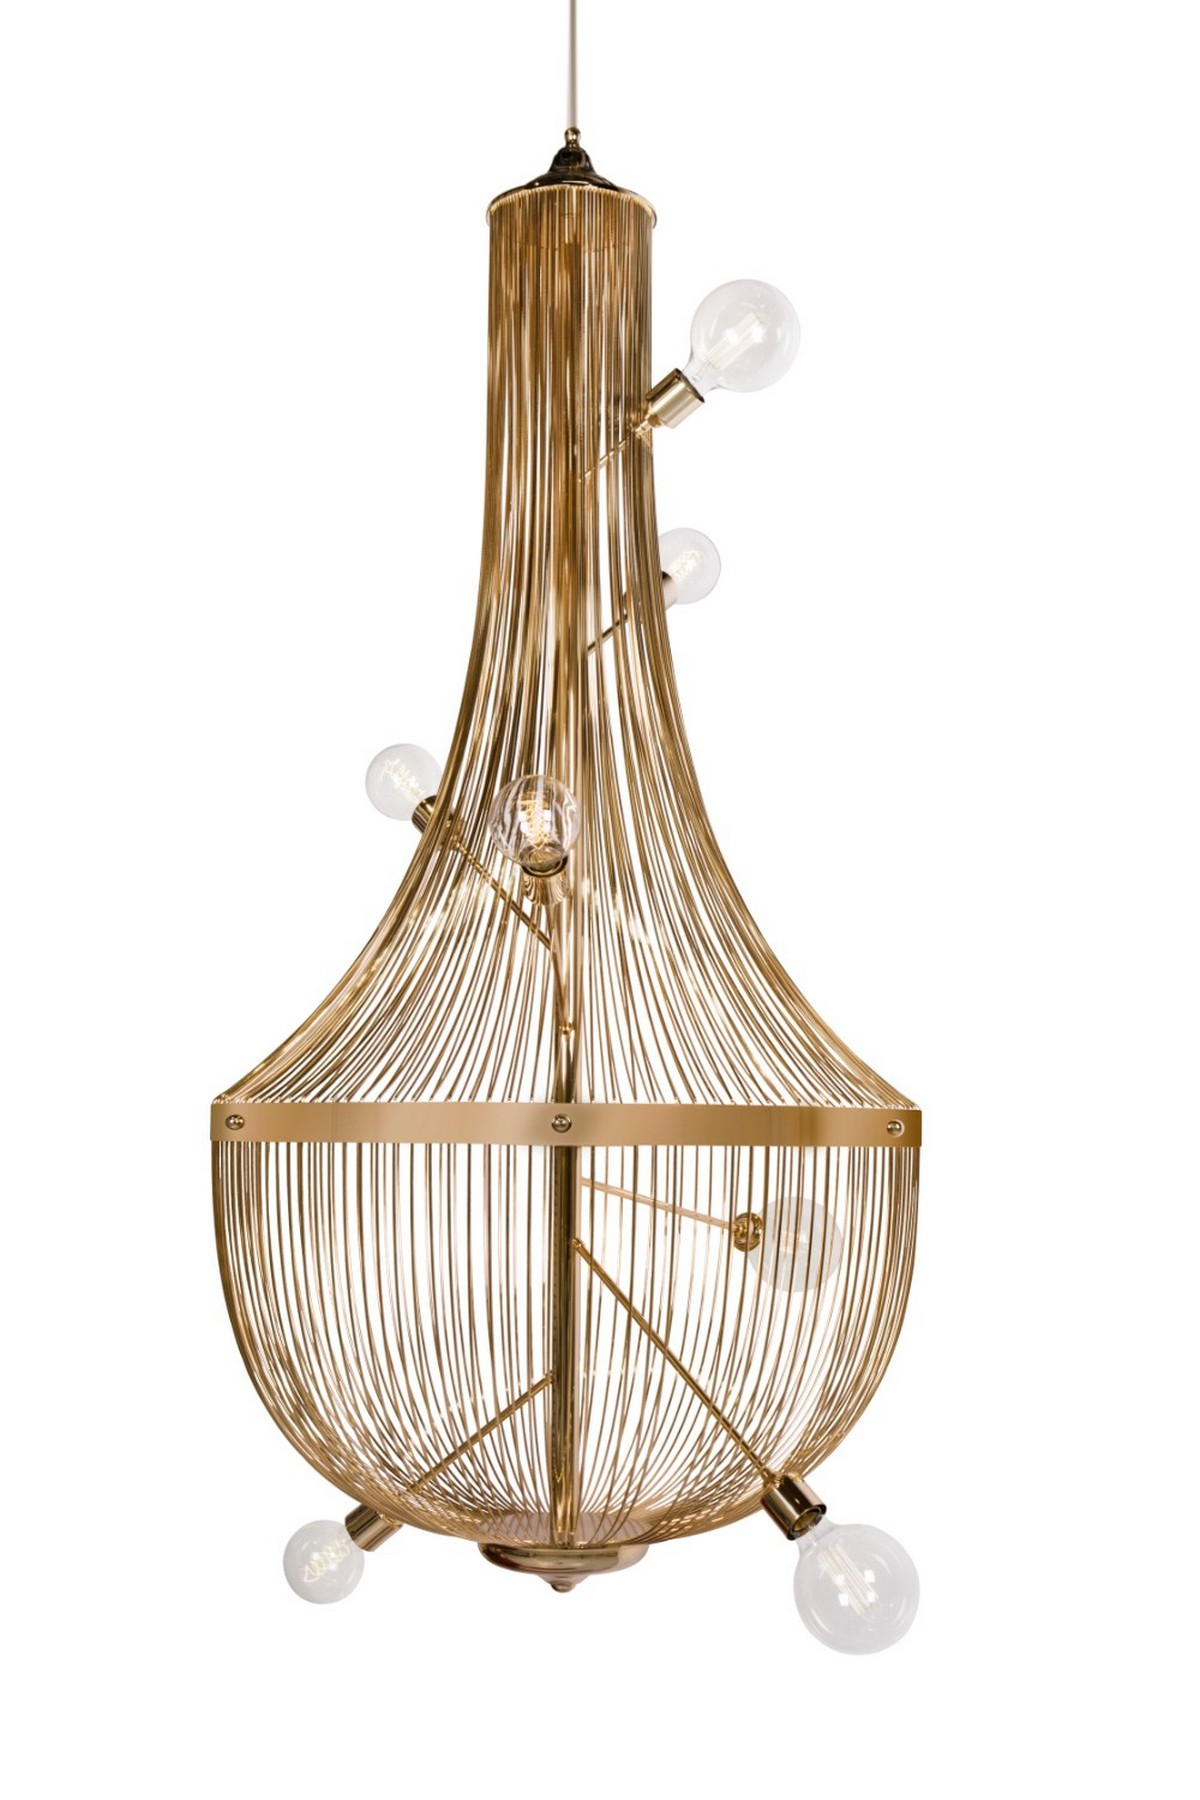 maison et objet 2019 Find The Best Living Room Designs At Maison et Objet 2019 chandelier2